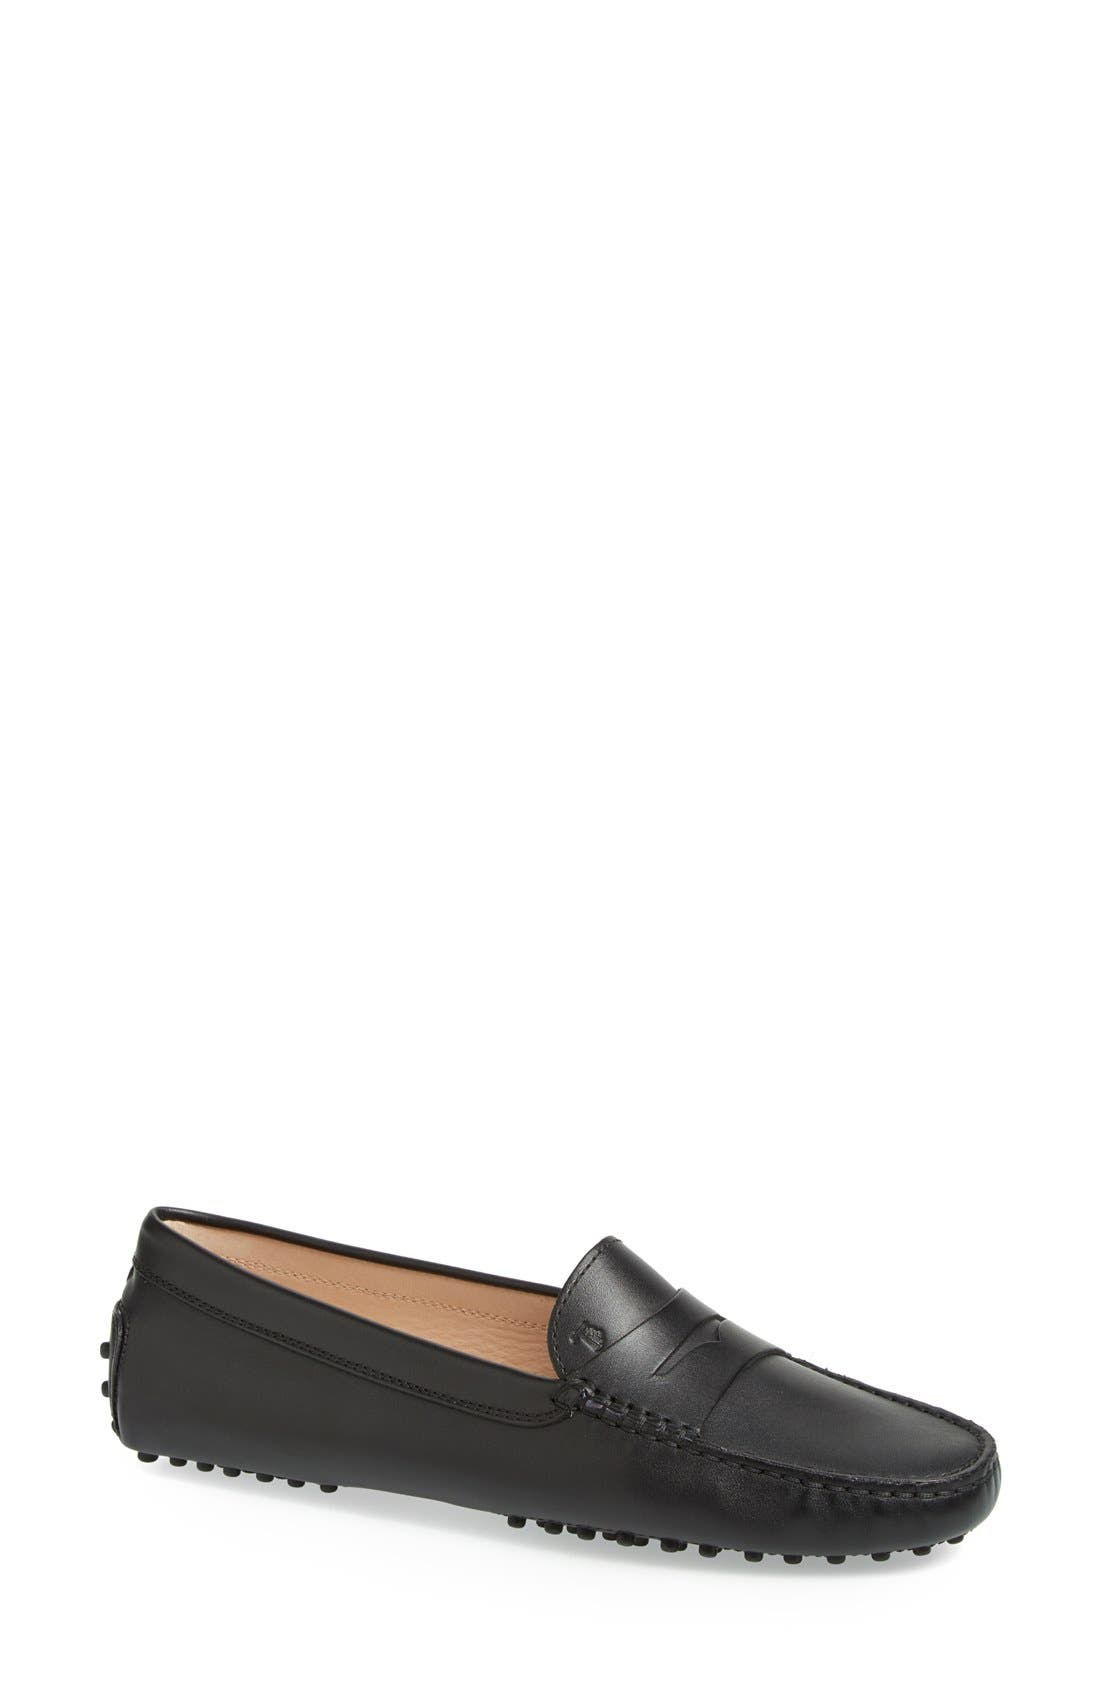 TOD'S 'Gommini' Driving Moccasin, Main, color, 001